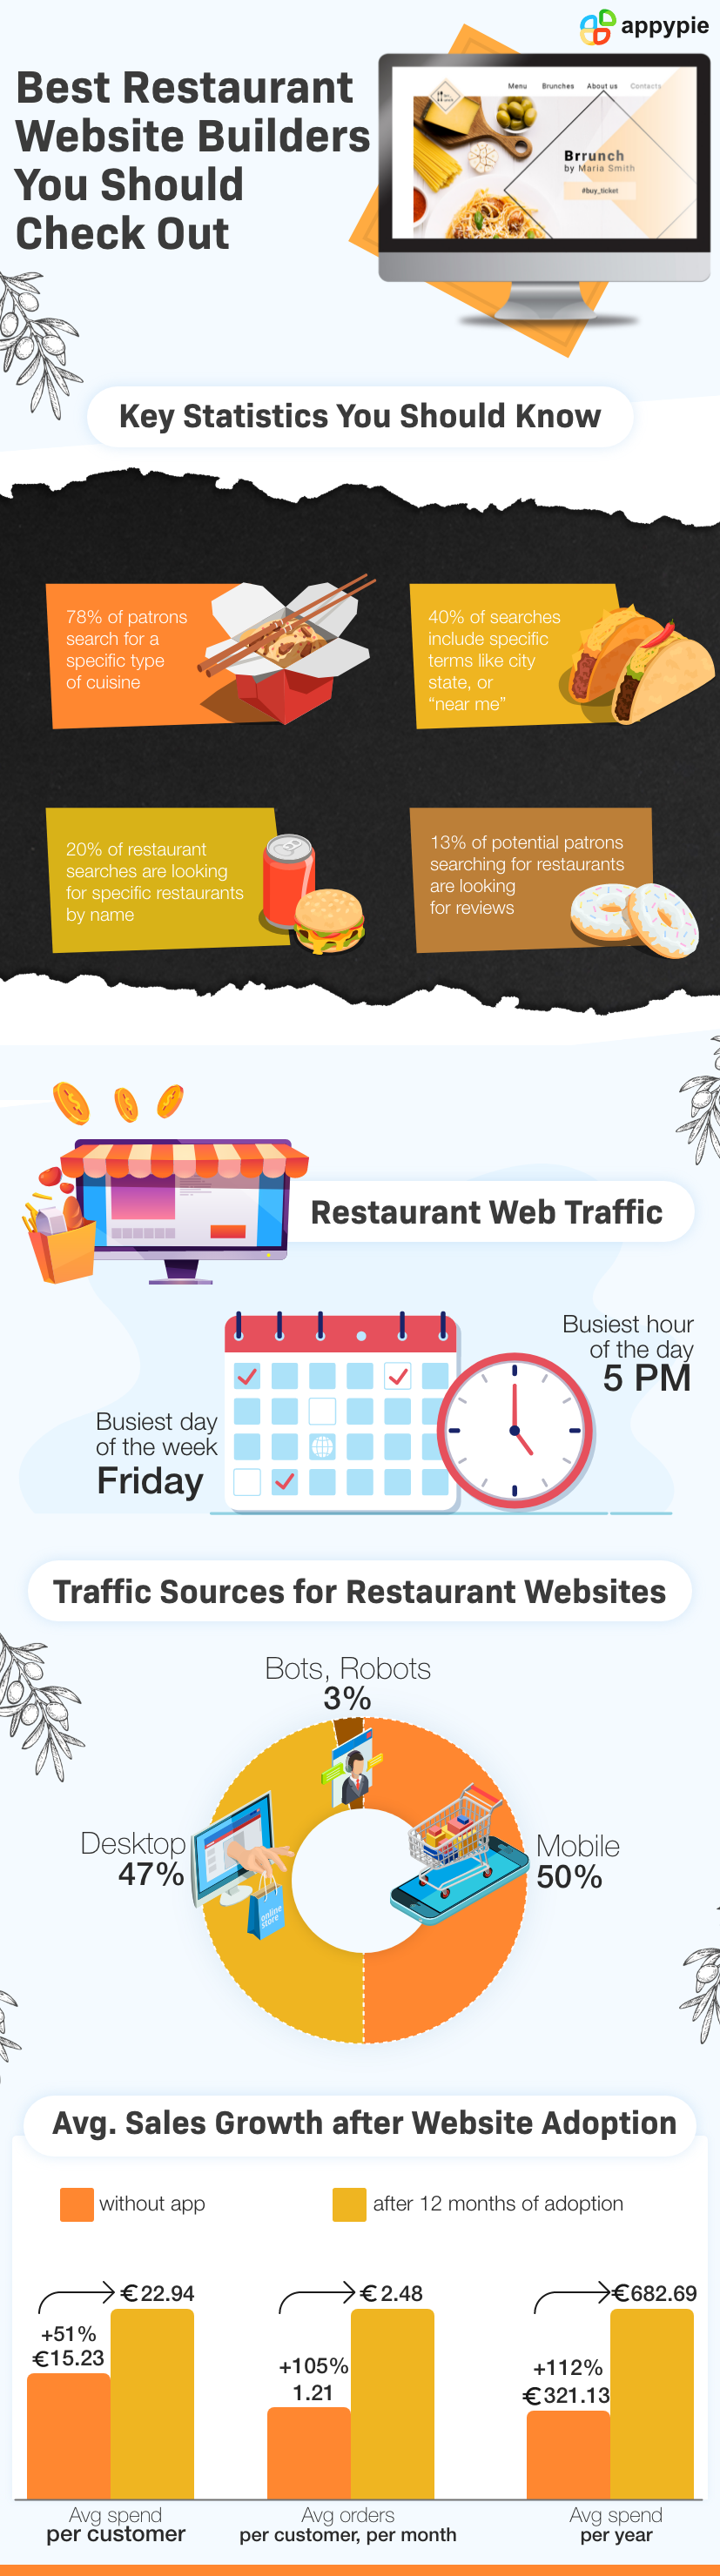 Best Restaurant Website BuildersYou Should Check Out - Appy Pie